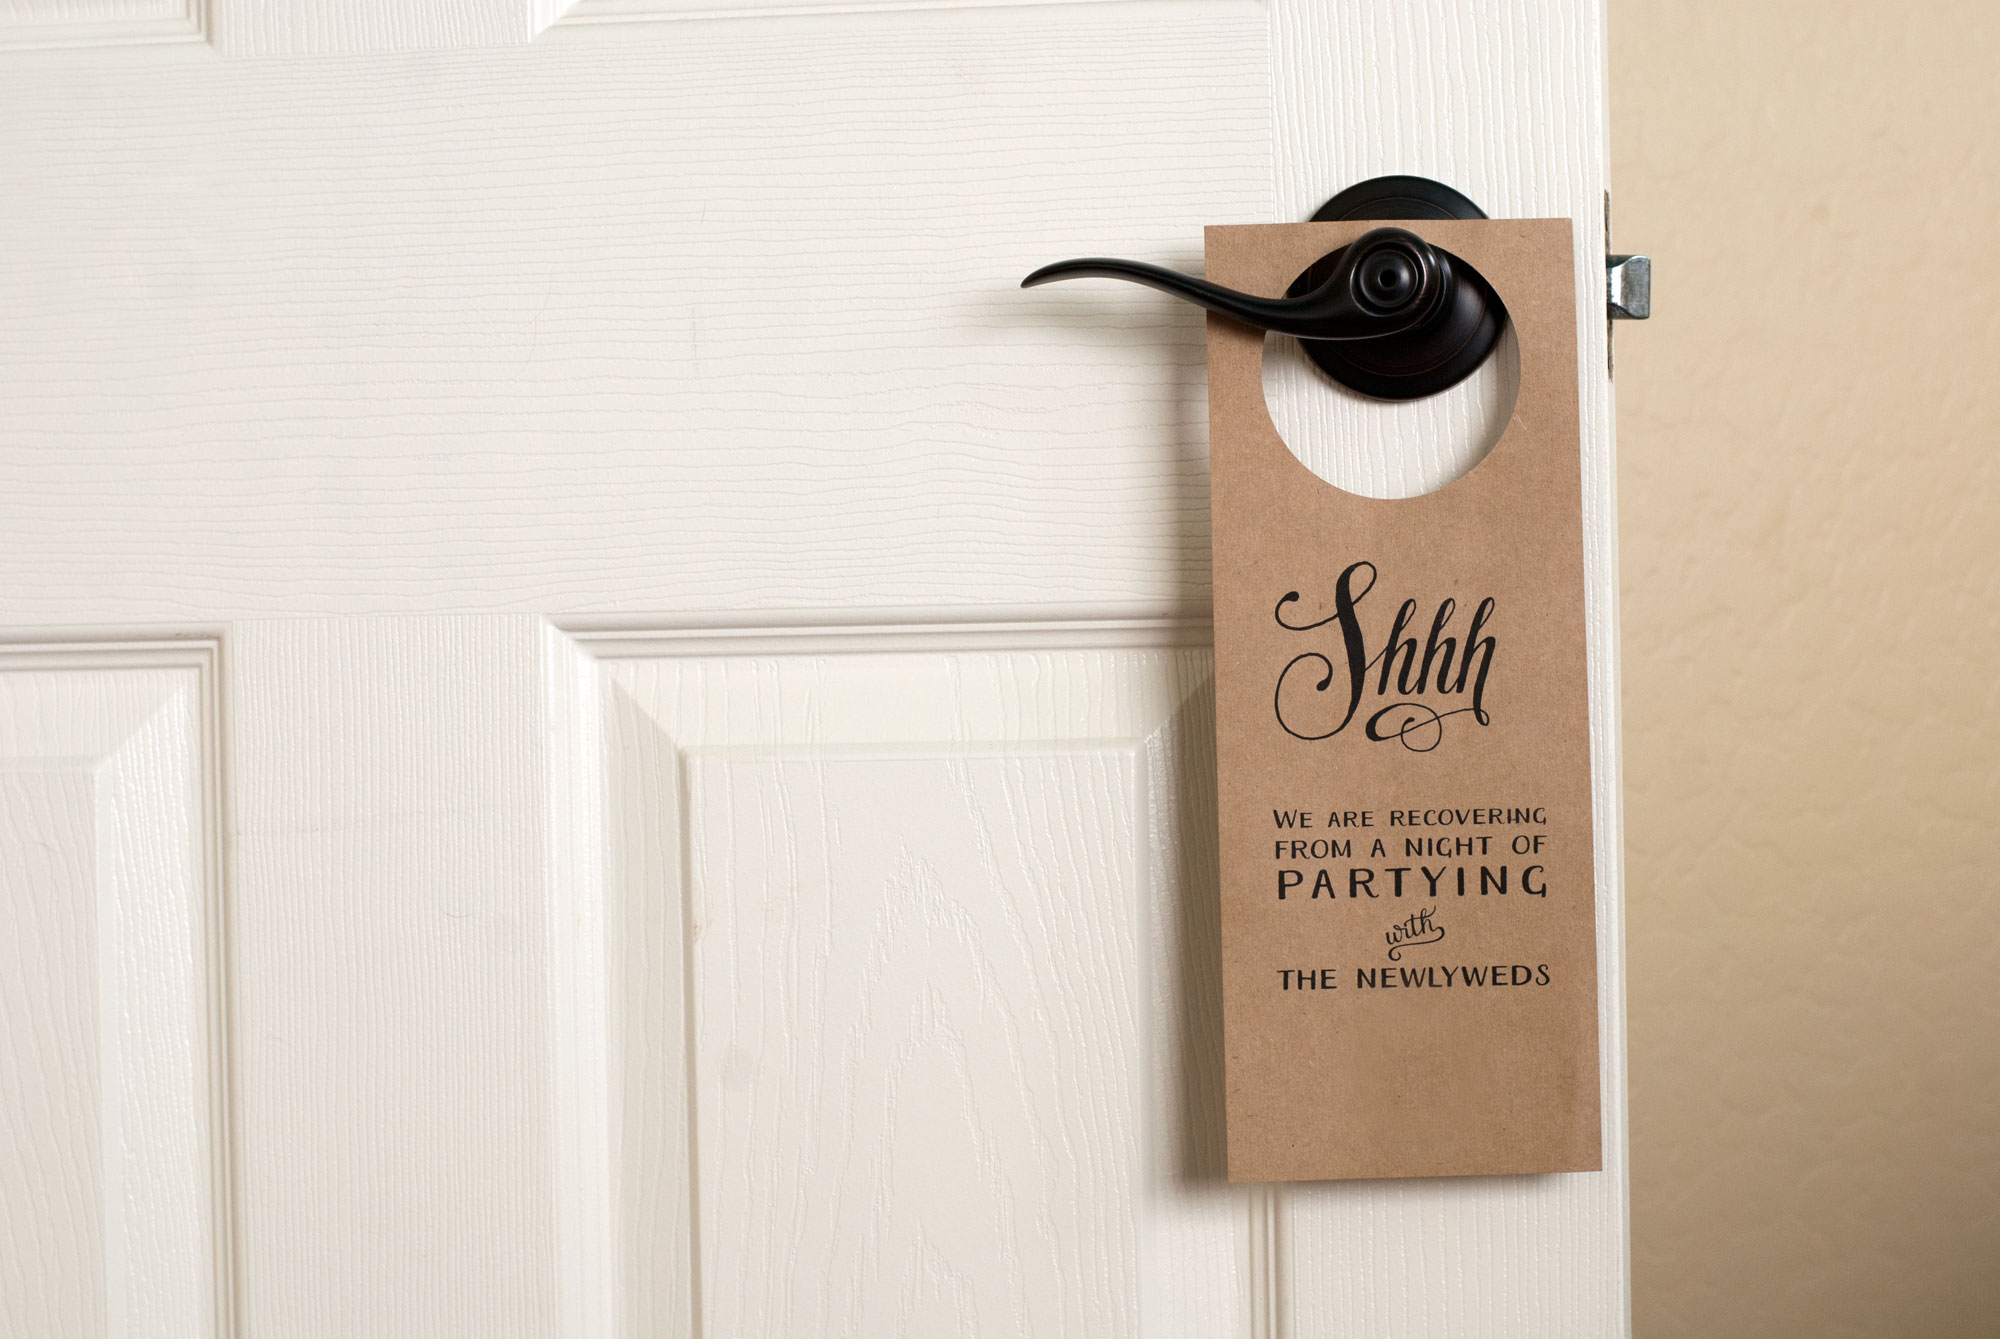 4 25 x 11 door hanger template - free wedding door hanger printable handmade and homegrown